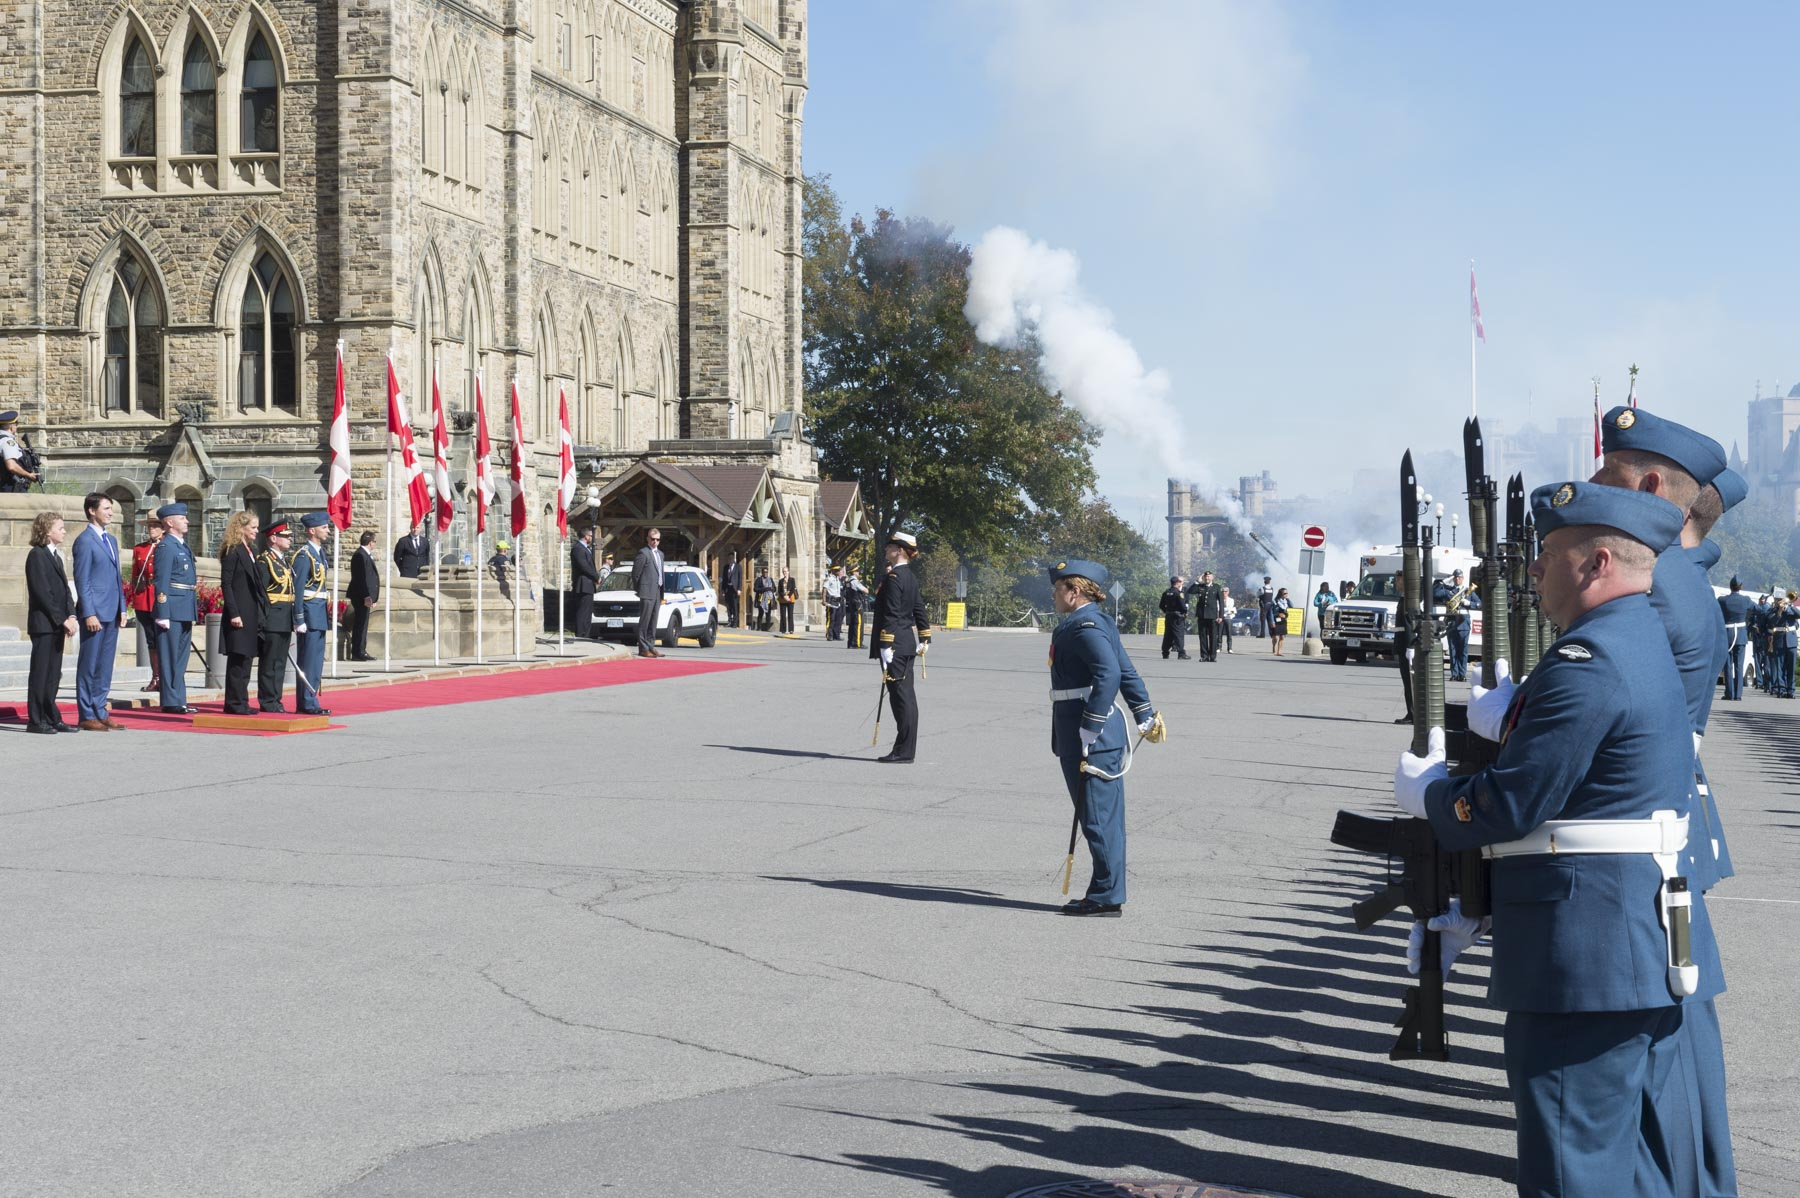 Following the ceremony, Ms. Payette stepped outside Parliament to receive military honours, including a Royal Salute and a 21-gun salute.